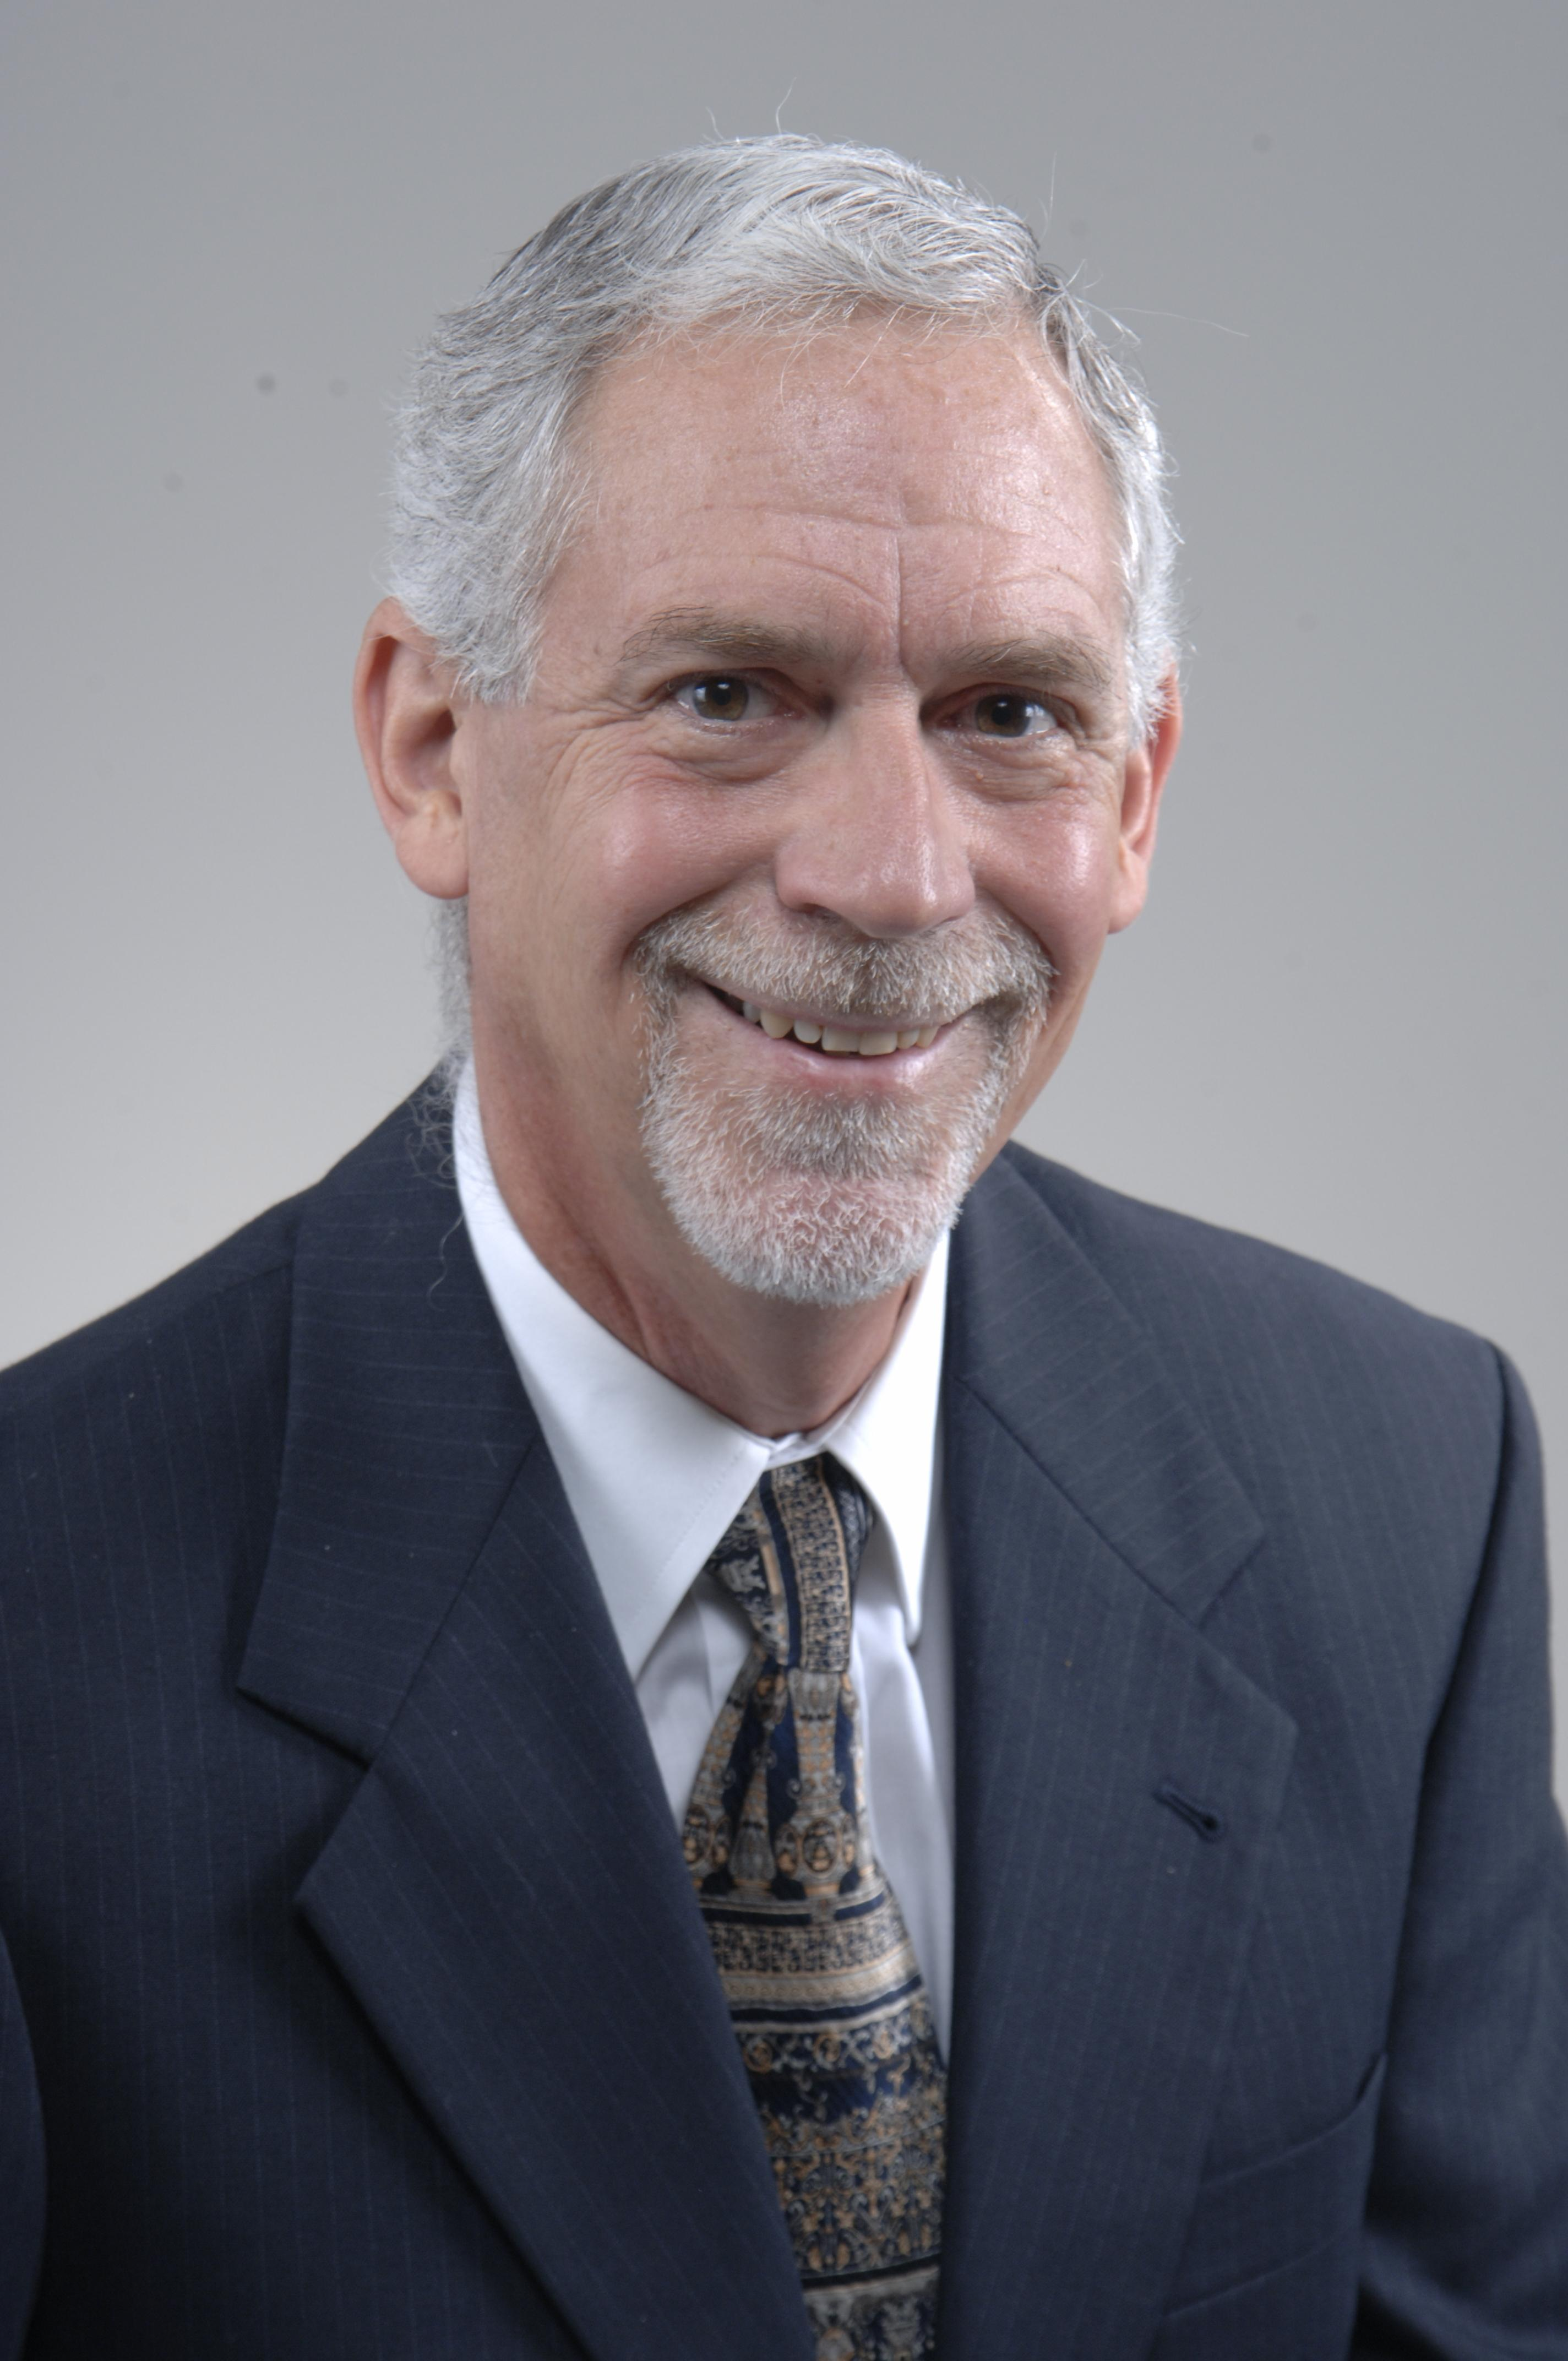 Dr. David Weldy